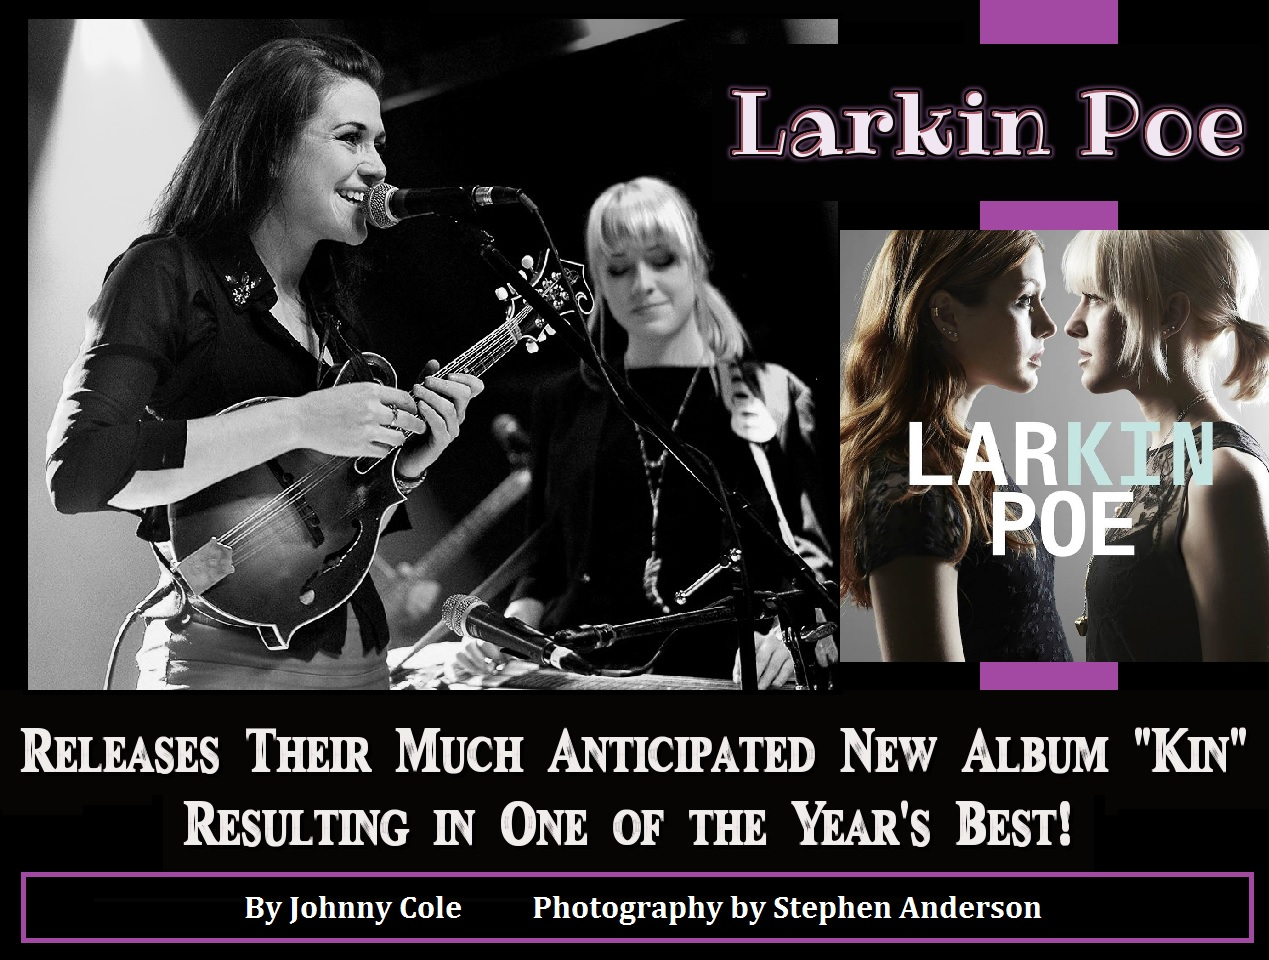 Larkin Poe Releases Their Much Anticipated New Album 'Kin' - Resulting in One of the Year's Best | By Johnny Cole